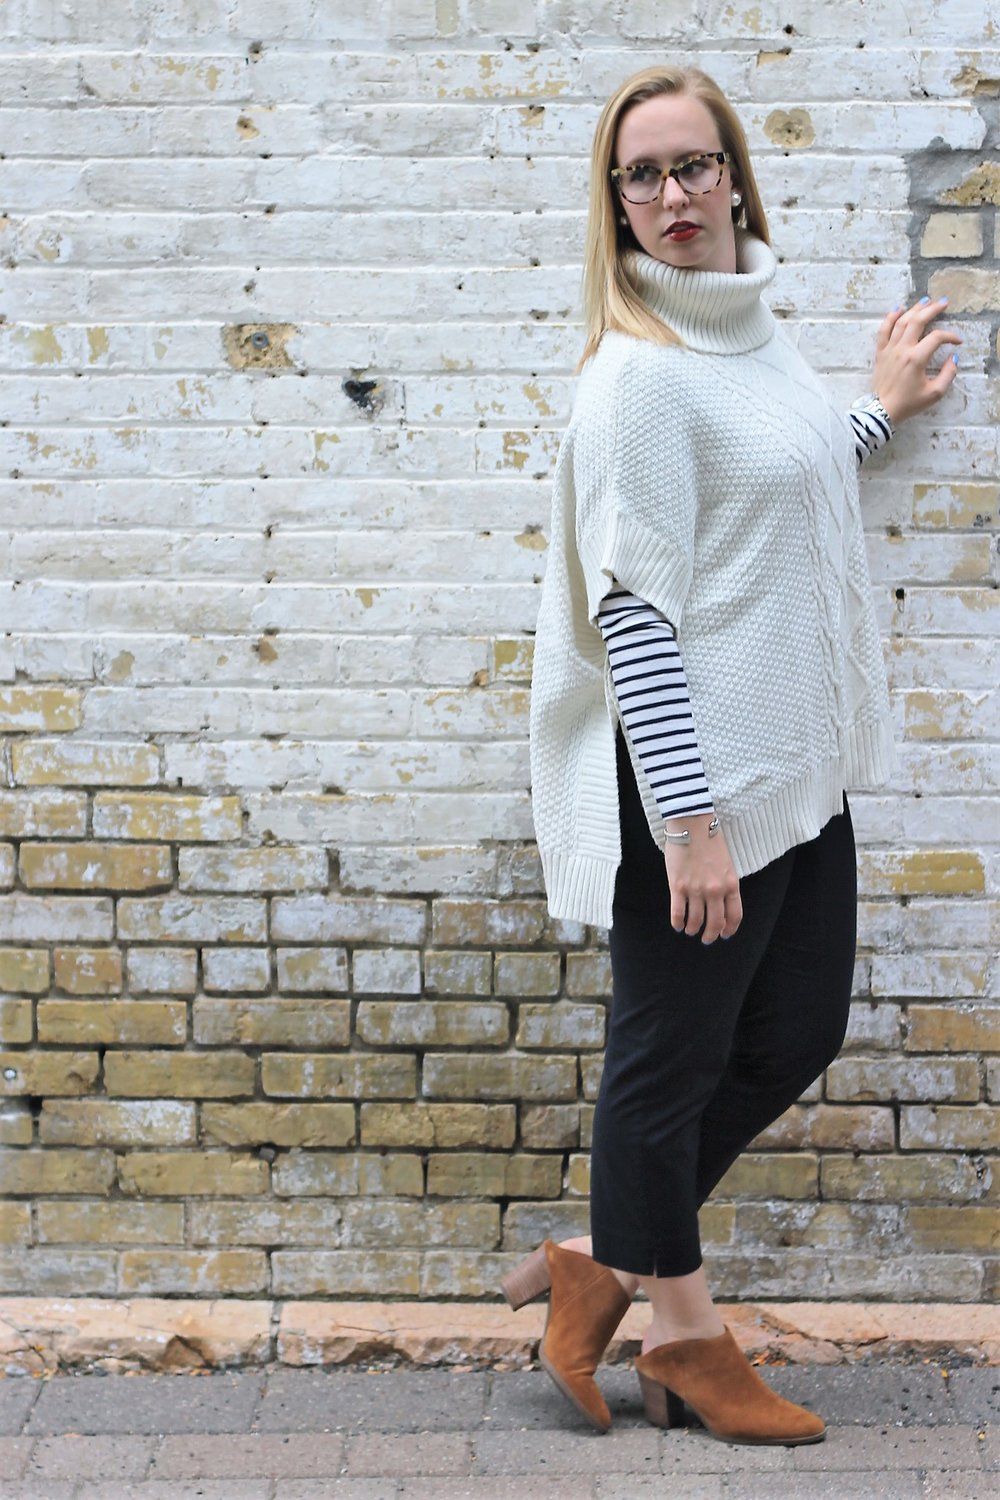 Striped Series   Chunky Poncho and Booties for Corporate Style   Work & What She Wore